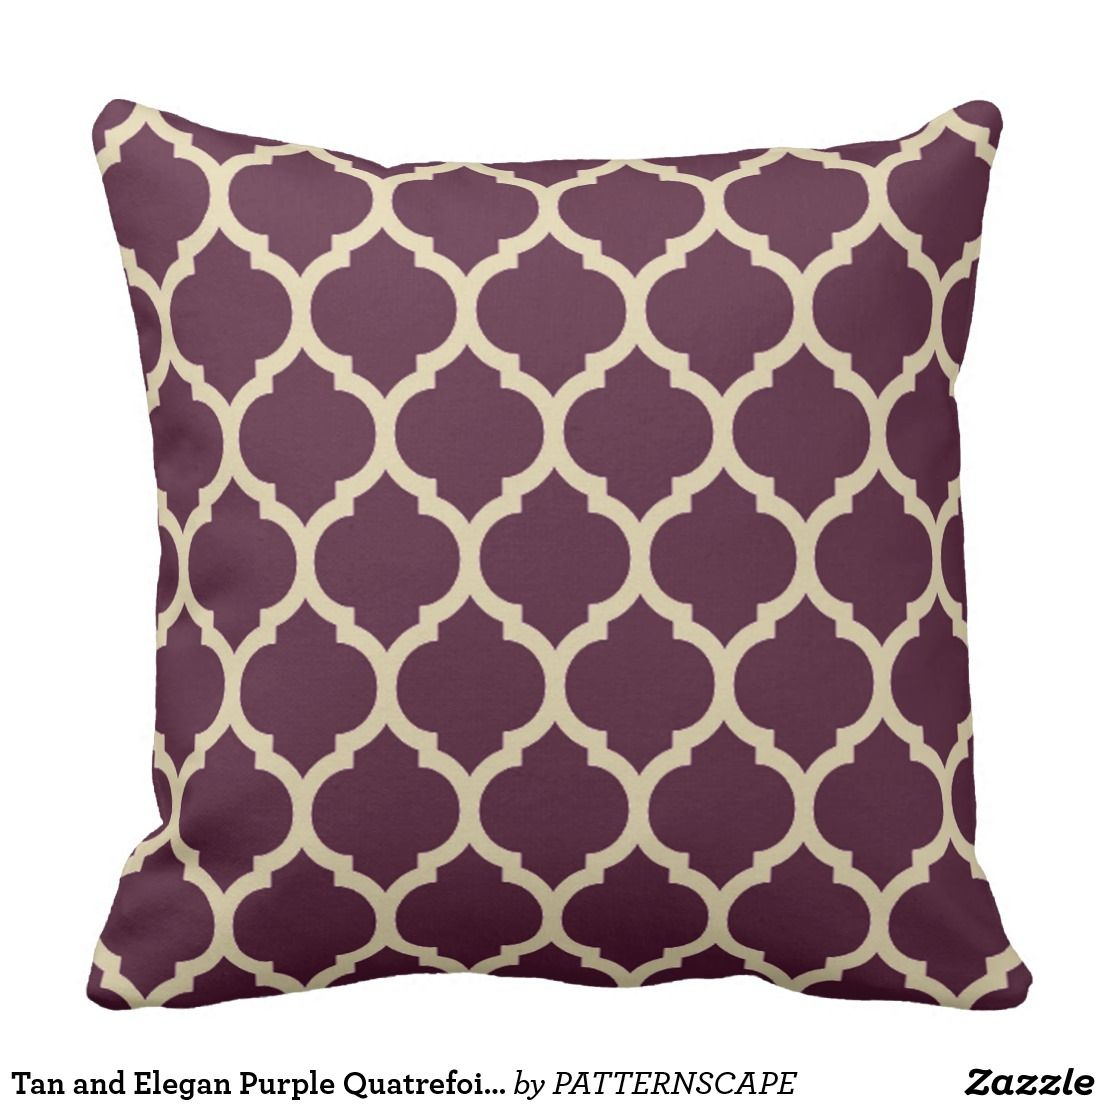 Tan And Elegan Purple Quatrefoil Moroccan Lattice Throw Pillow Zazzle Com Purple Throw Pillows Purple Pillows Lattice Pillow